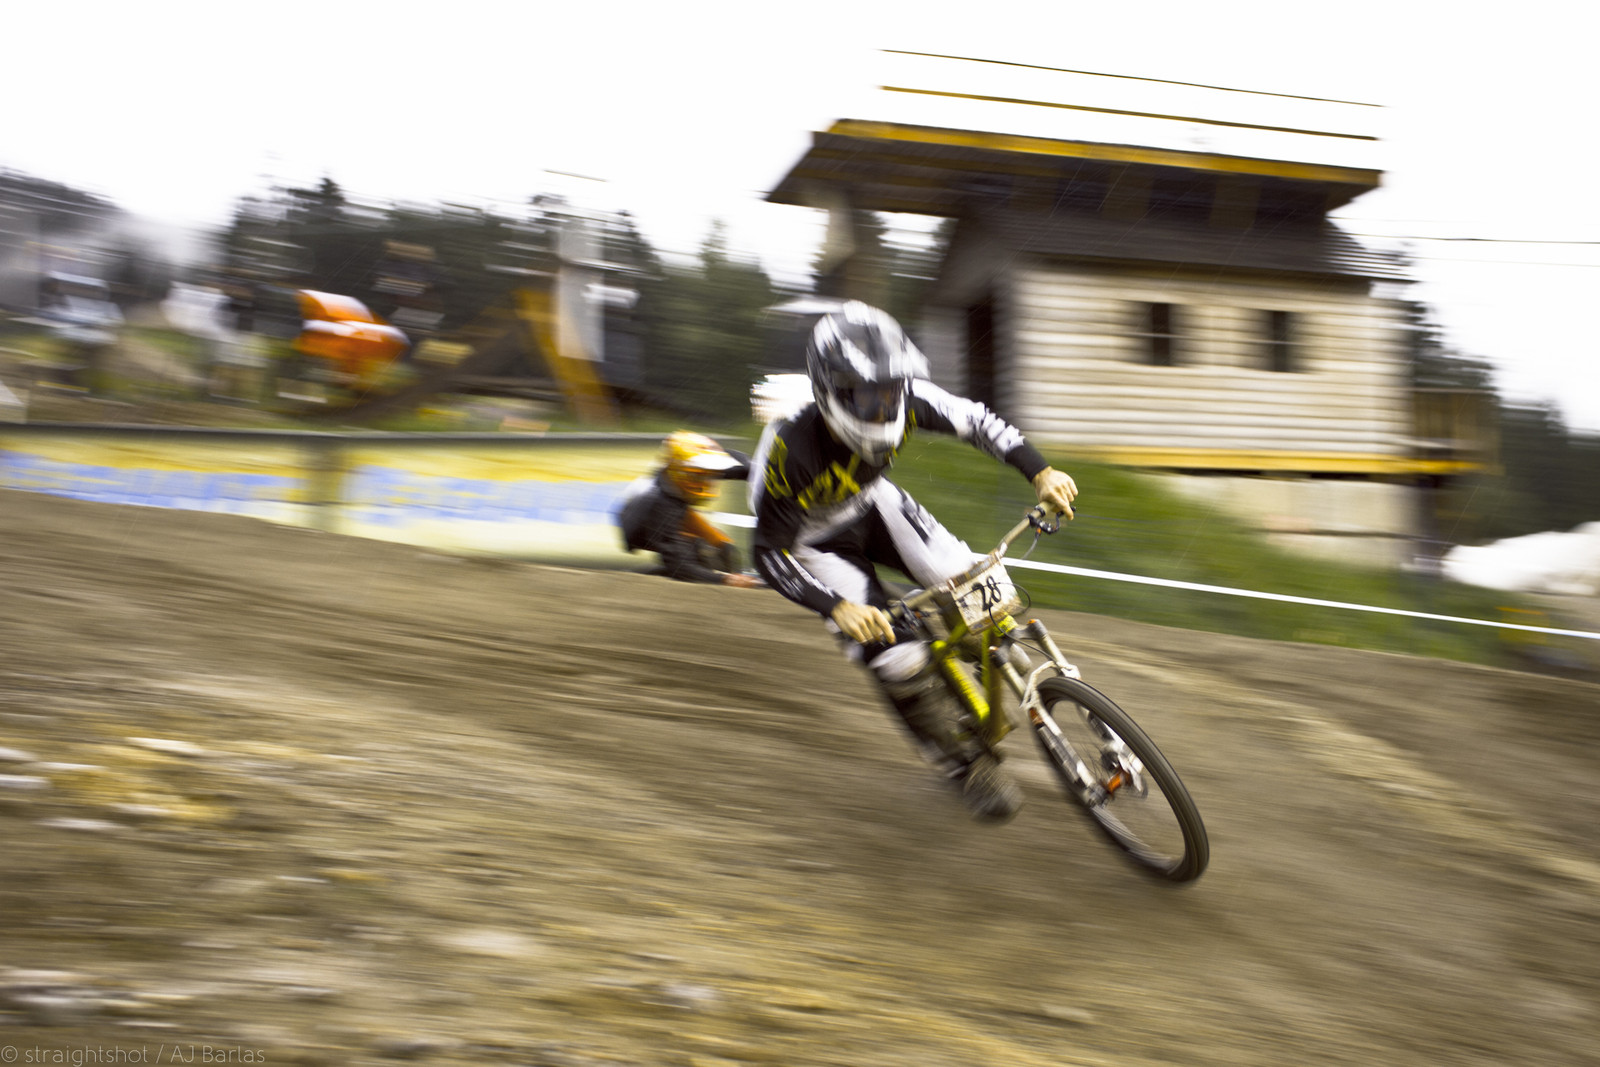 Remi Thirion Was Pinned in Early Rounds - Crankworx Slalom 2013 - Mountain Biking Pictures - Vital MTB